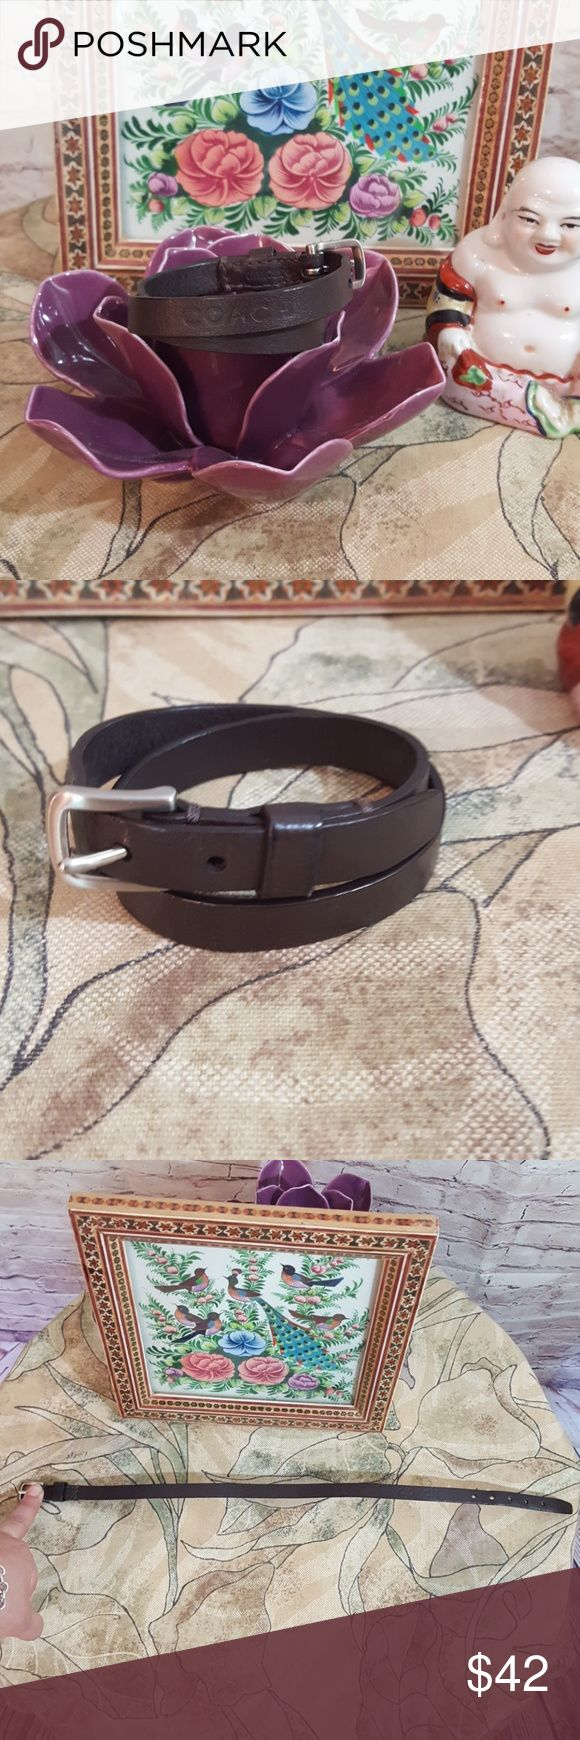 Coach Leather Wrap Bracelet This Trendy Adjustable  Wrap Bracelet is Sure To Please... It's Approx 18in in length Coach Jewelry